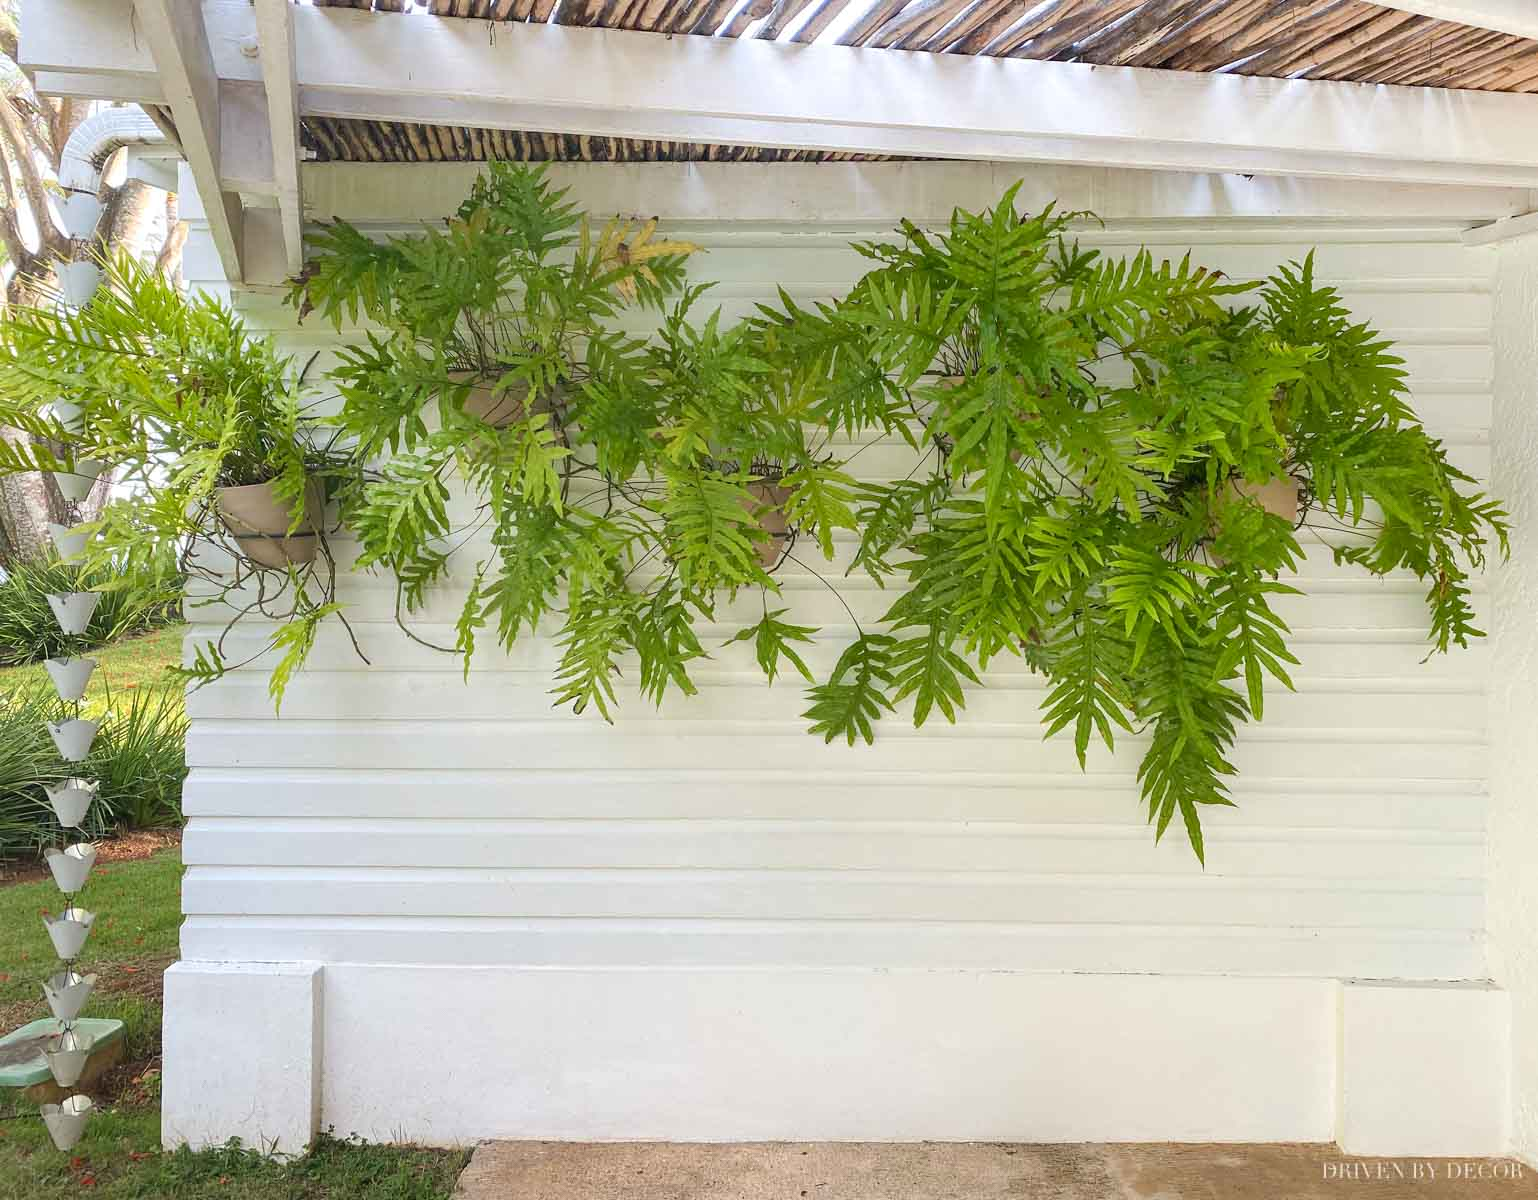 Love the idea of adding wall mounted planter holders to a blank outdoor wall!